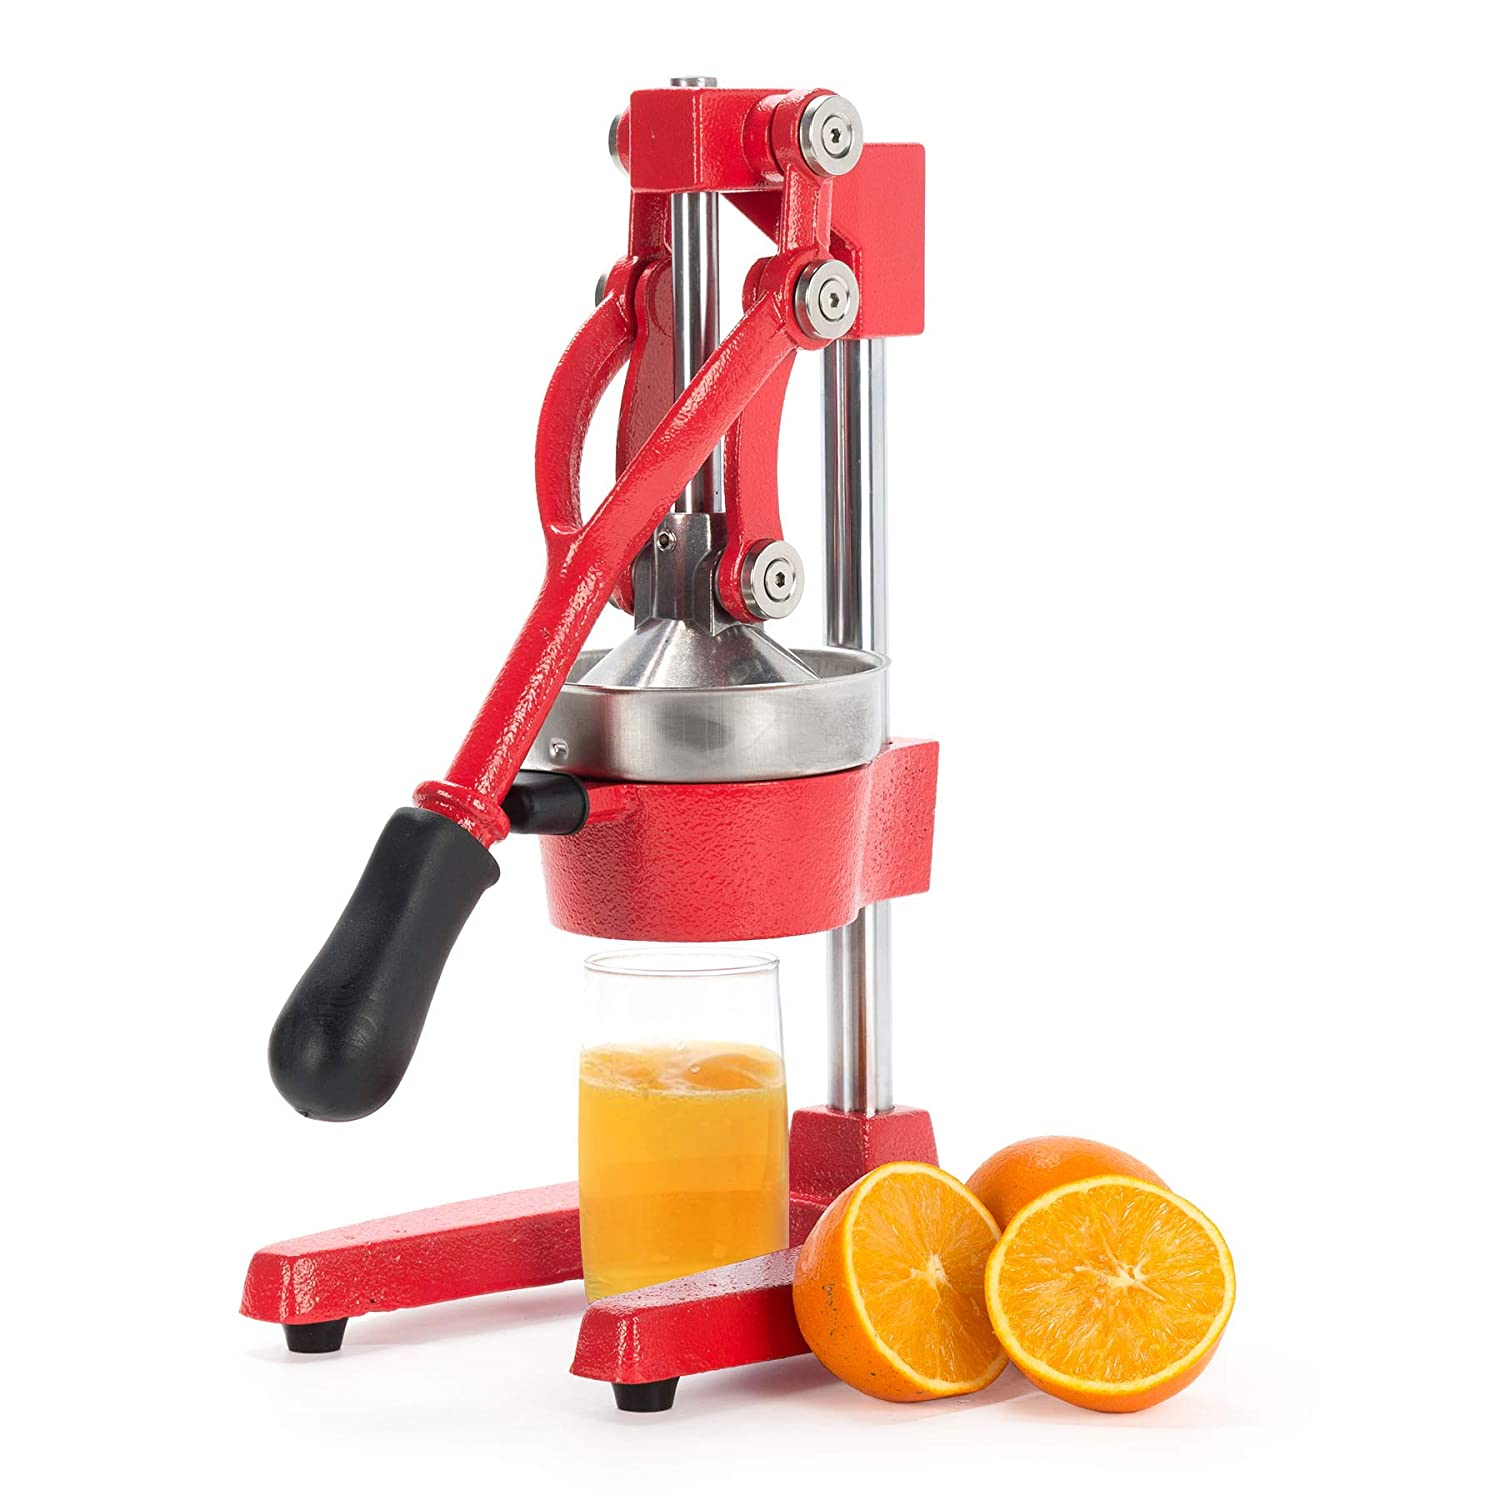 CO-Z Commercial Grade Citrus Juicer Hand Press Manual Fruit Juicer Juice Squeezer Citrus Orange Lemon Pomegranate (Red)